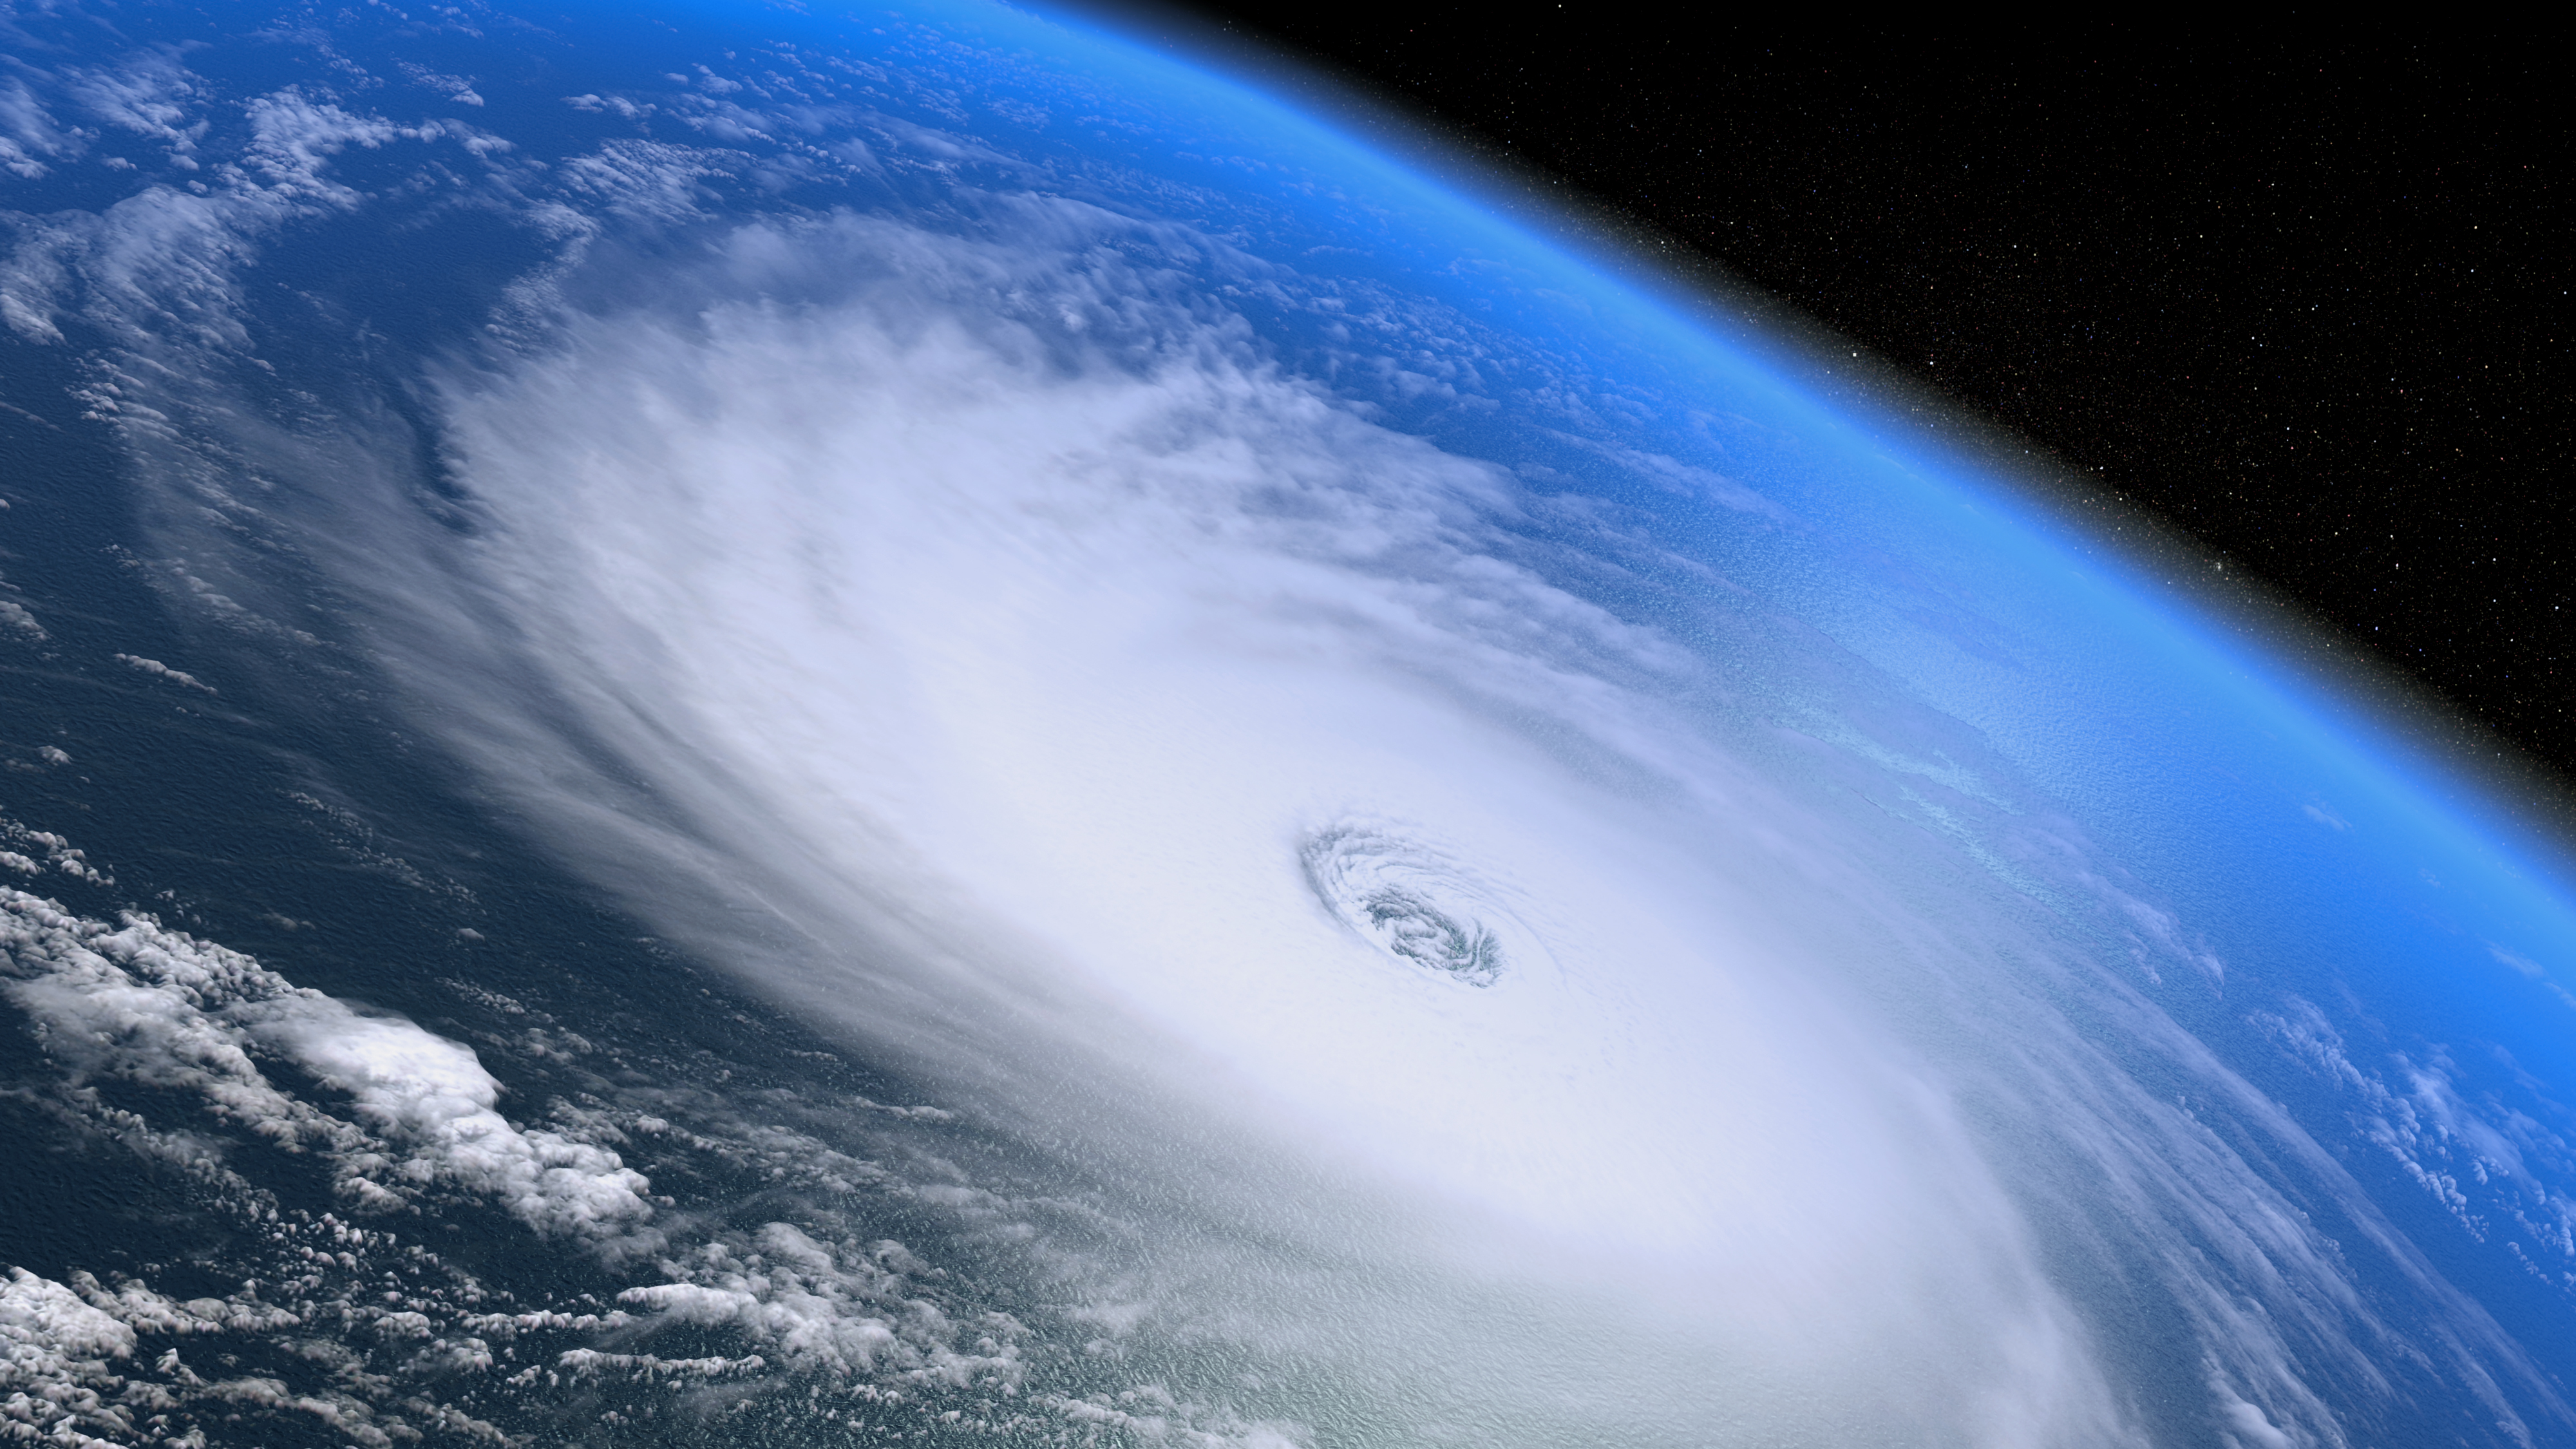 Hurricanes, typhoons and cyclones